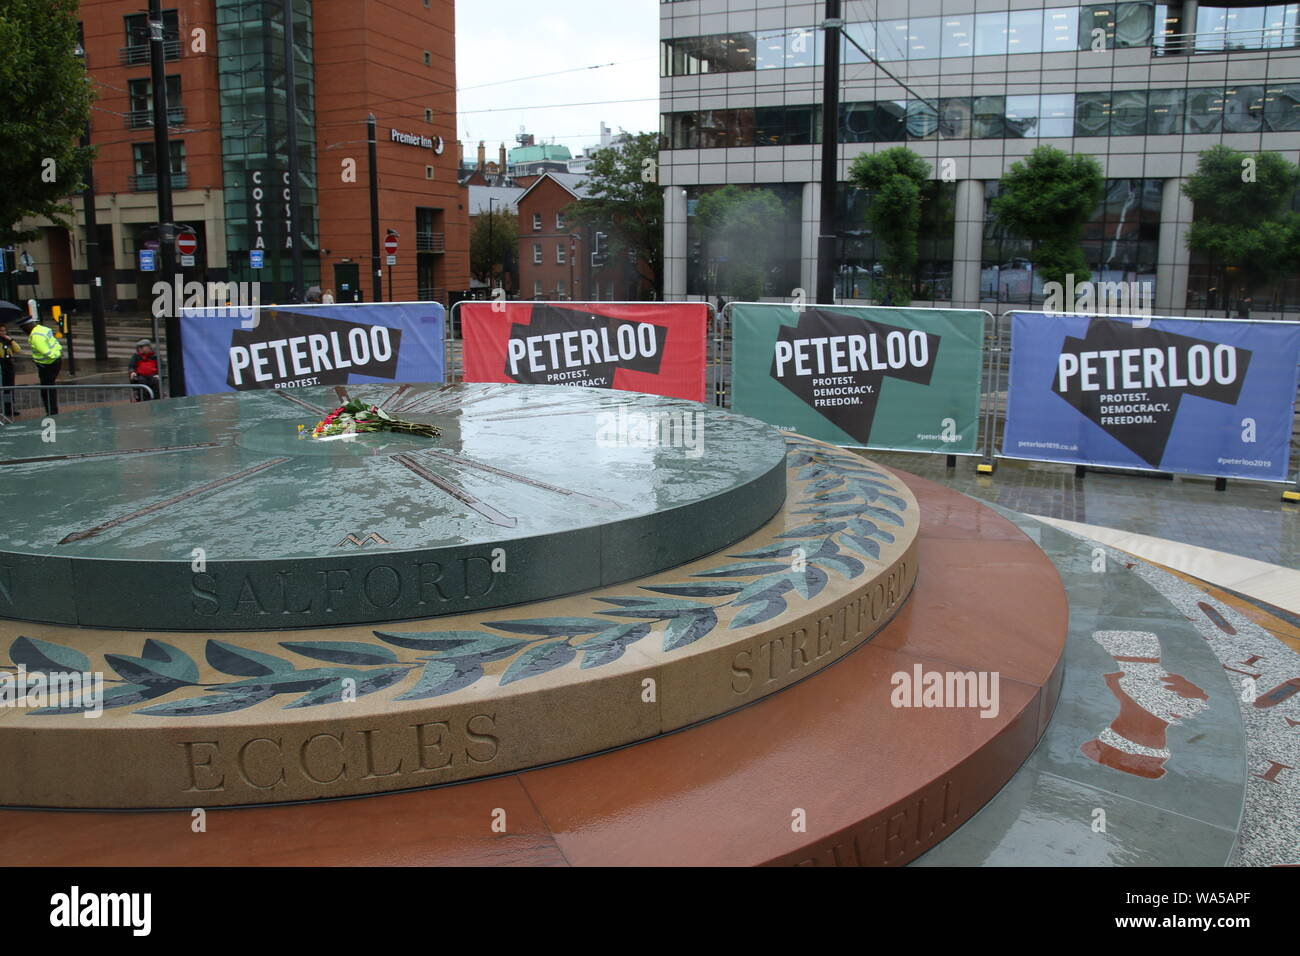 People gather together in Manchester in memory of the people that died in the Peterloo Massacre 200 years ago - Peterloo Memorial Manchester. Stock Photo